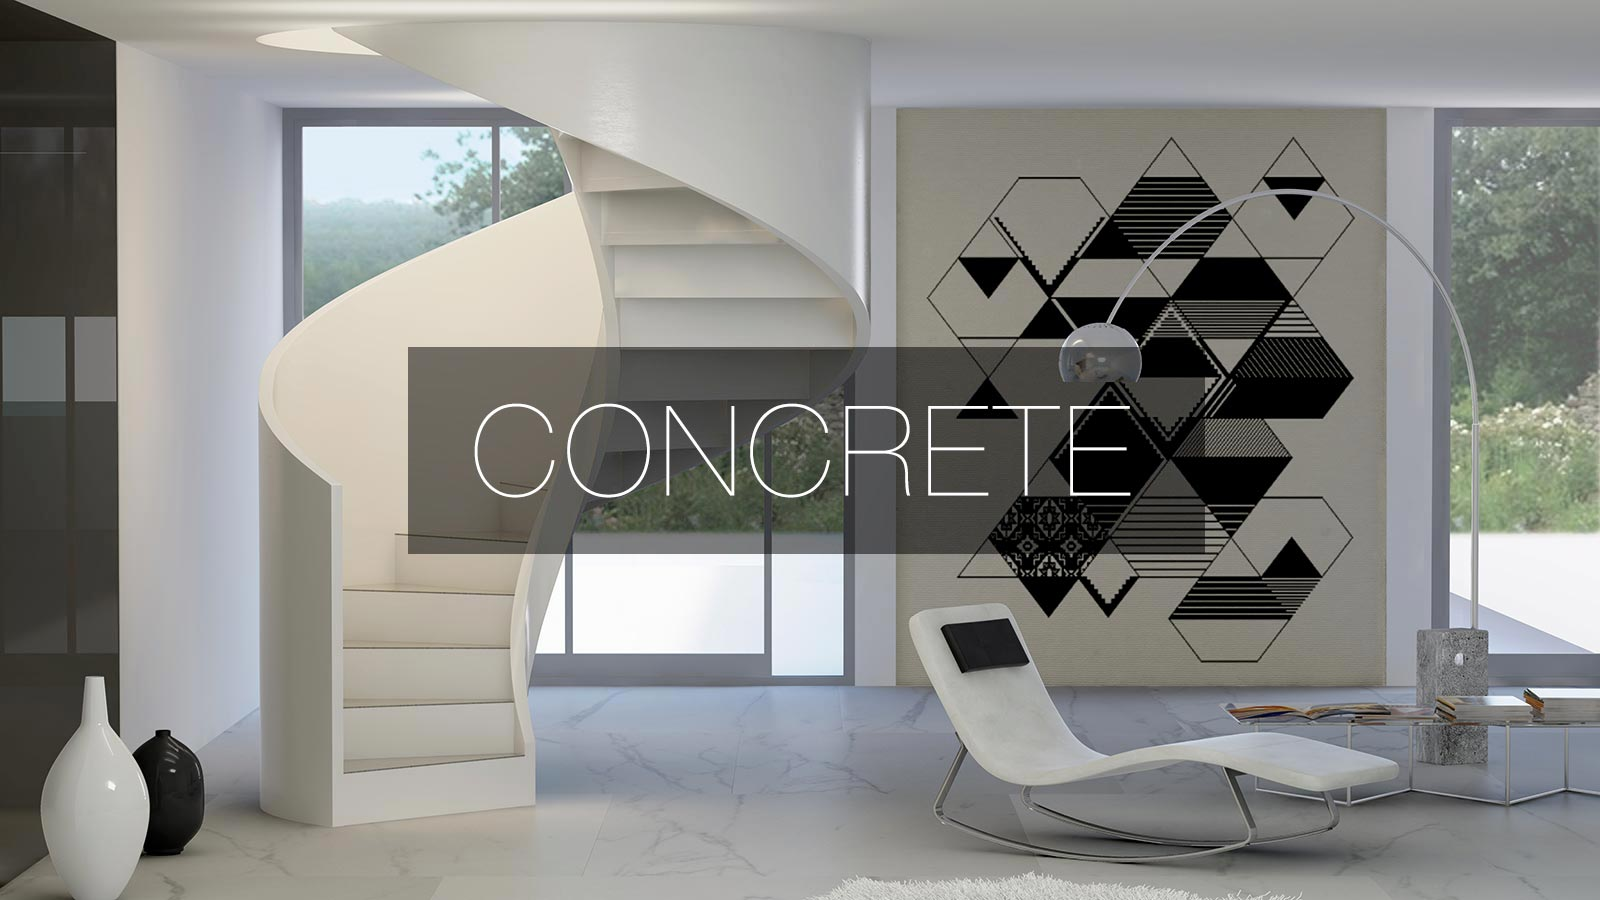 scala-in-cemento-concrete-1-by-executive-stairs